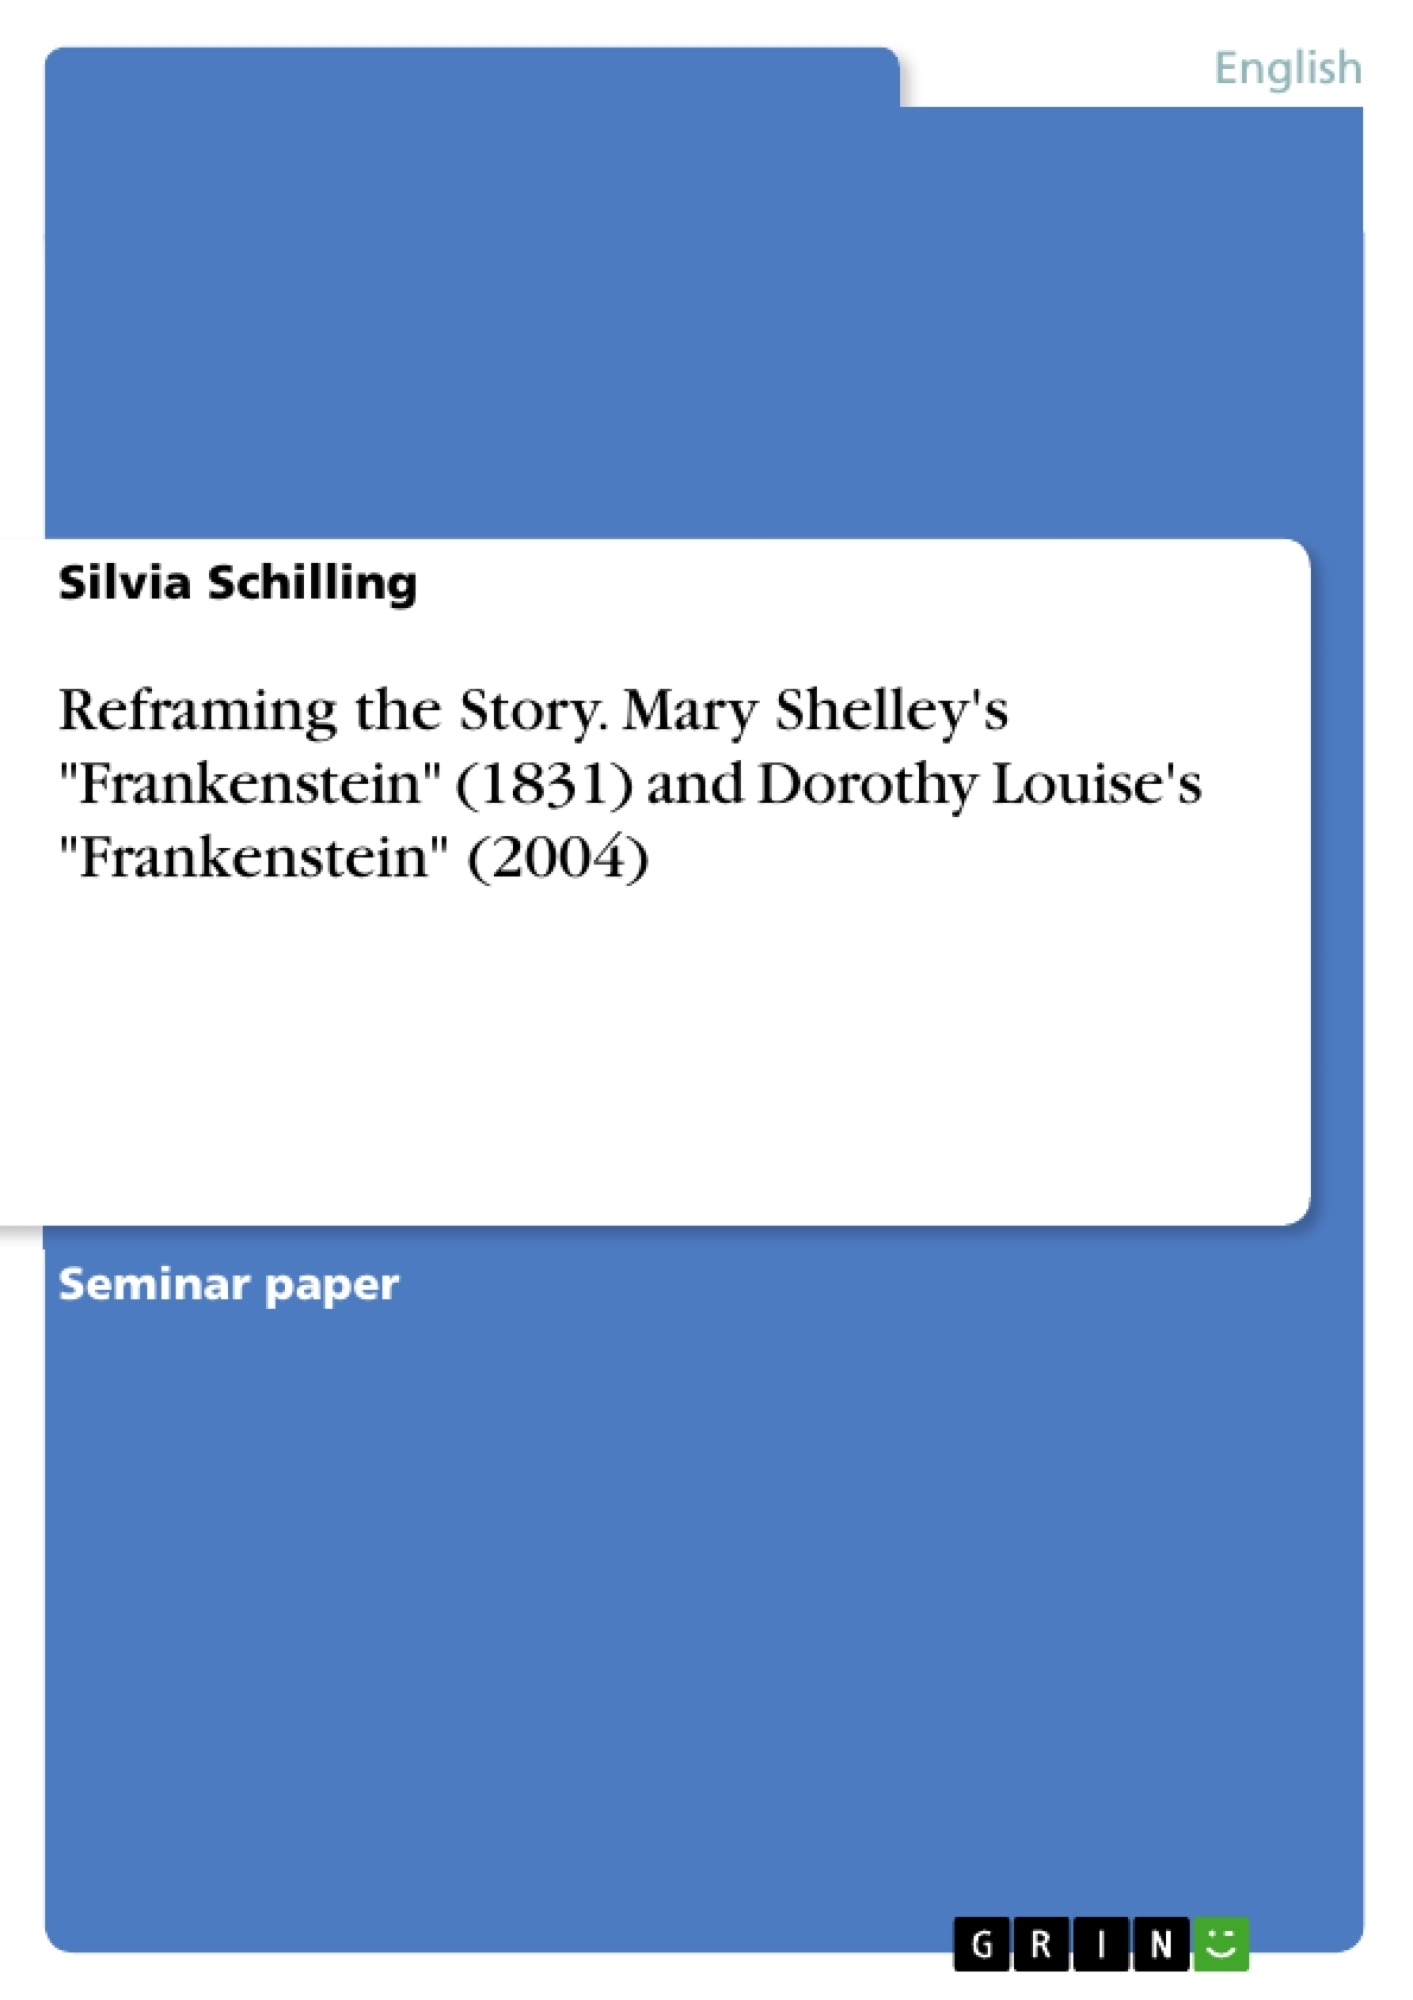 """Title: Reframing the Story. Mary Shelley's """"Frankenstein"""" (1831) and Dorothy Louise's """"Frankenstein"""" (2004)"""